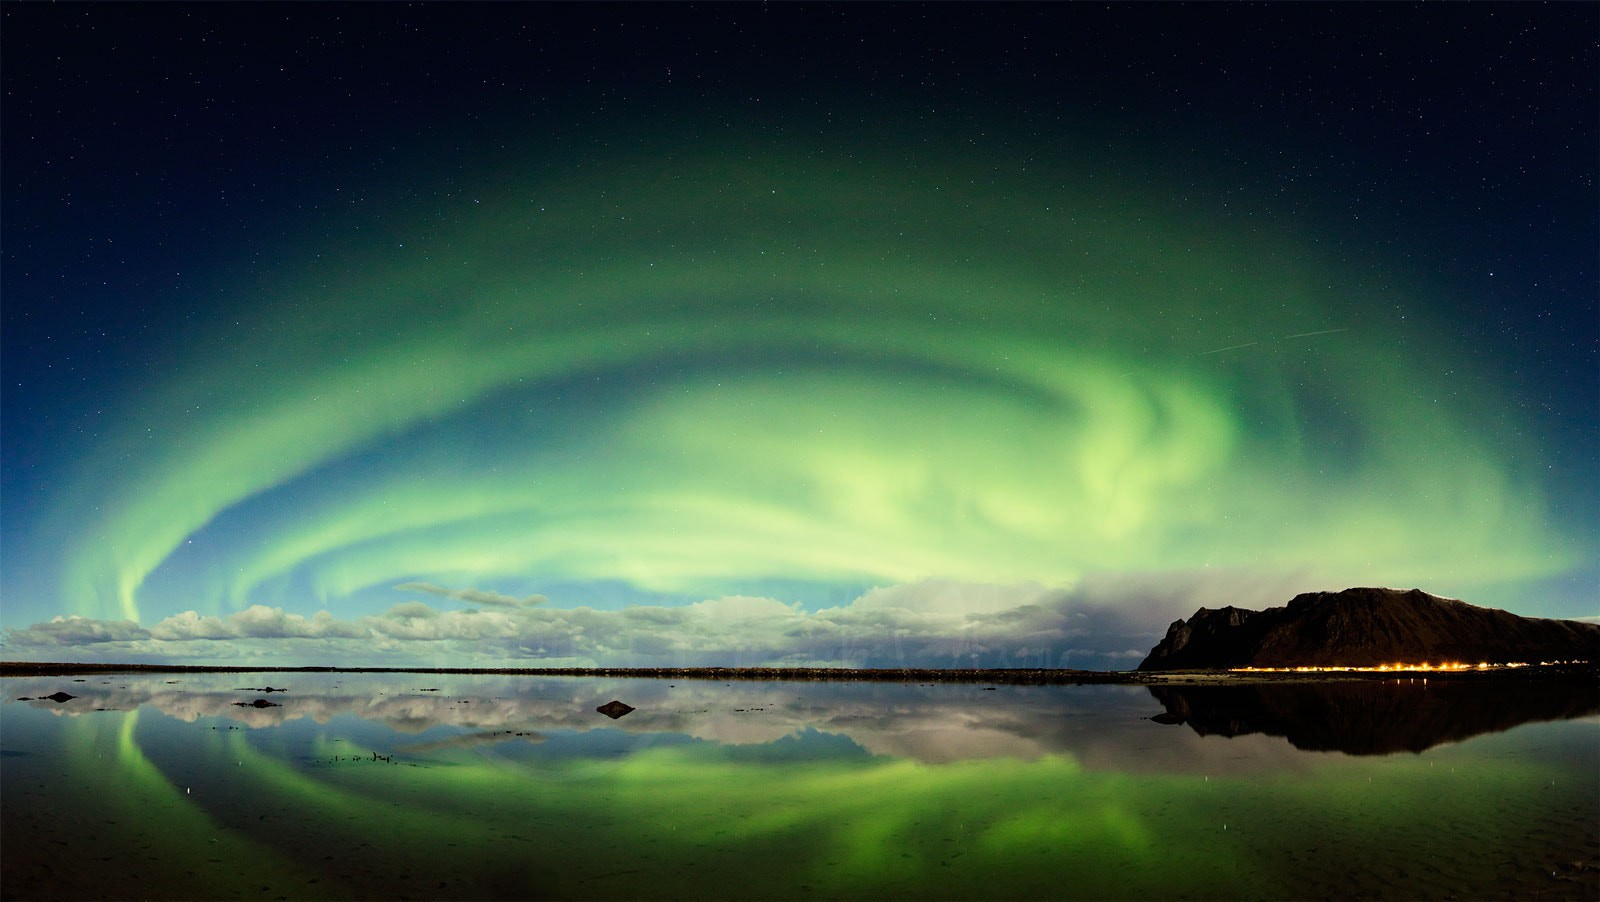 Photograph Auroras Panoramas by Frank Olsen on 500px